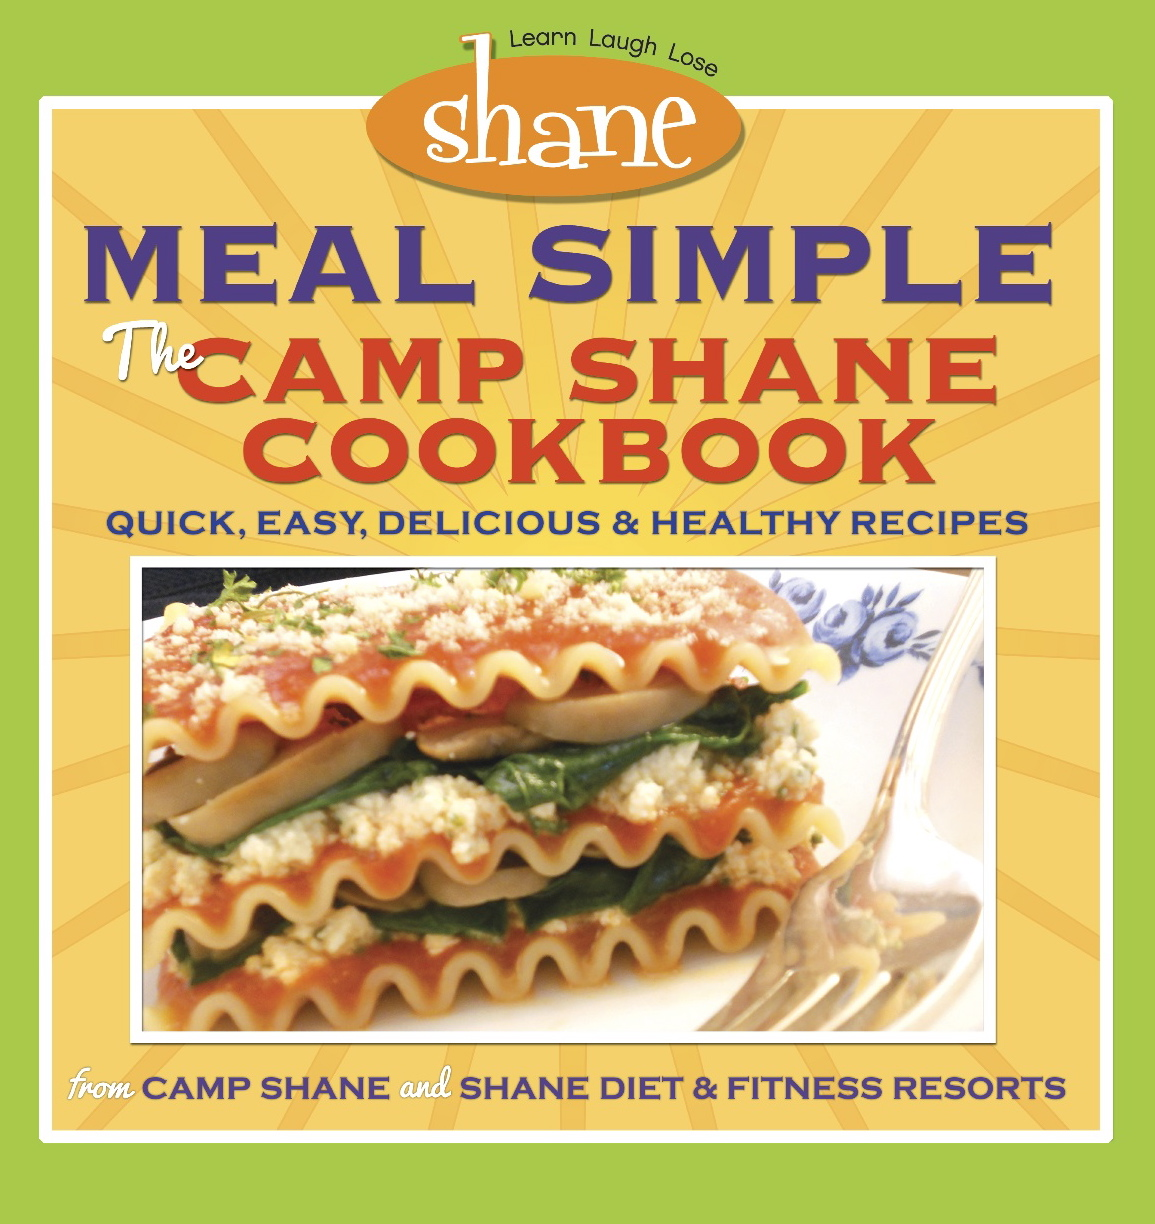 Meal Simple, Camp Shane and Shane Diet & Fitness Resorts ...